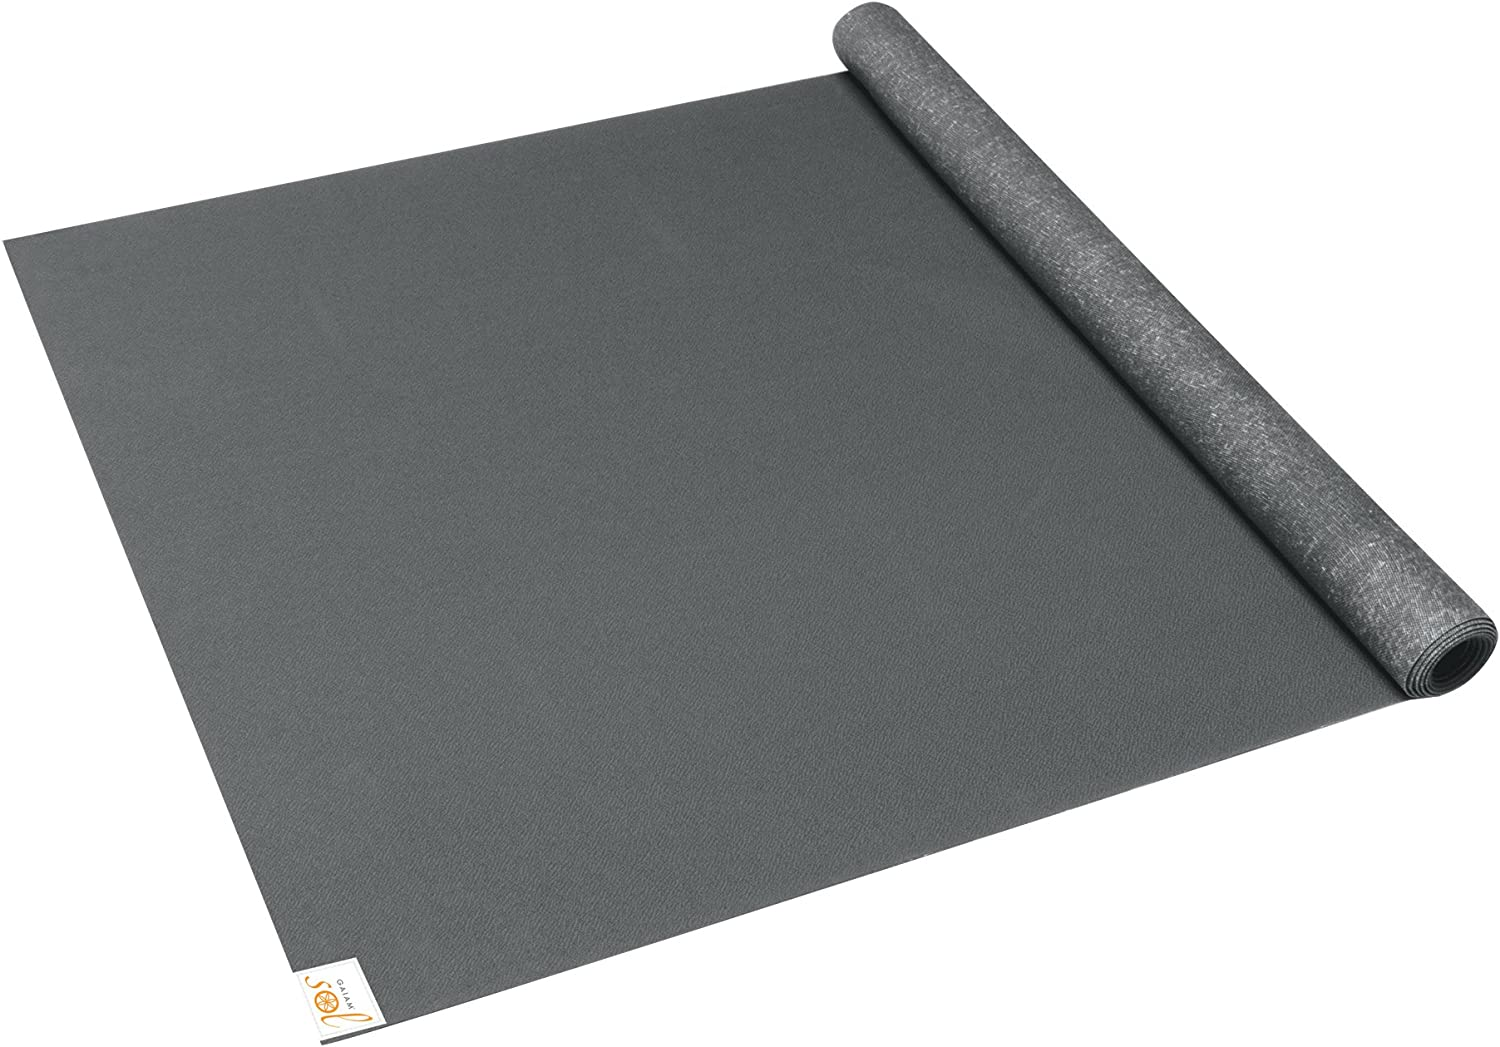 Amazon.com : Gaiam Sol Thin-Grip Yoga Mat, Slate, 1mm : Thin ...